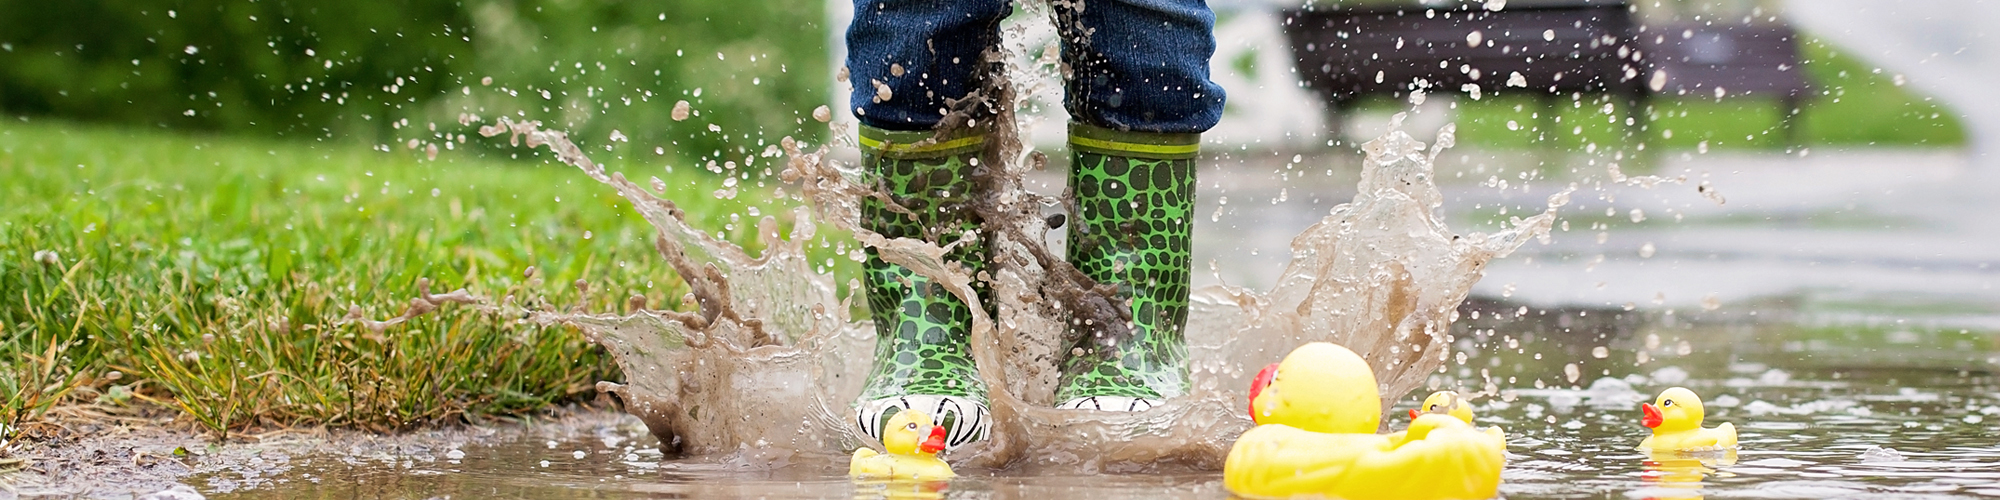 Feet with galoshes jumping into a puddle with rubber ducks floating in water